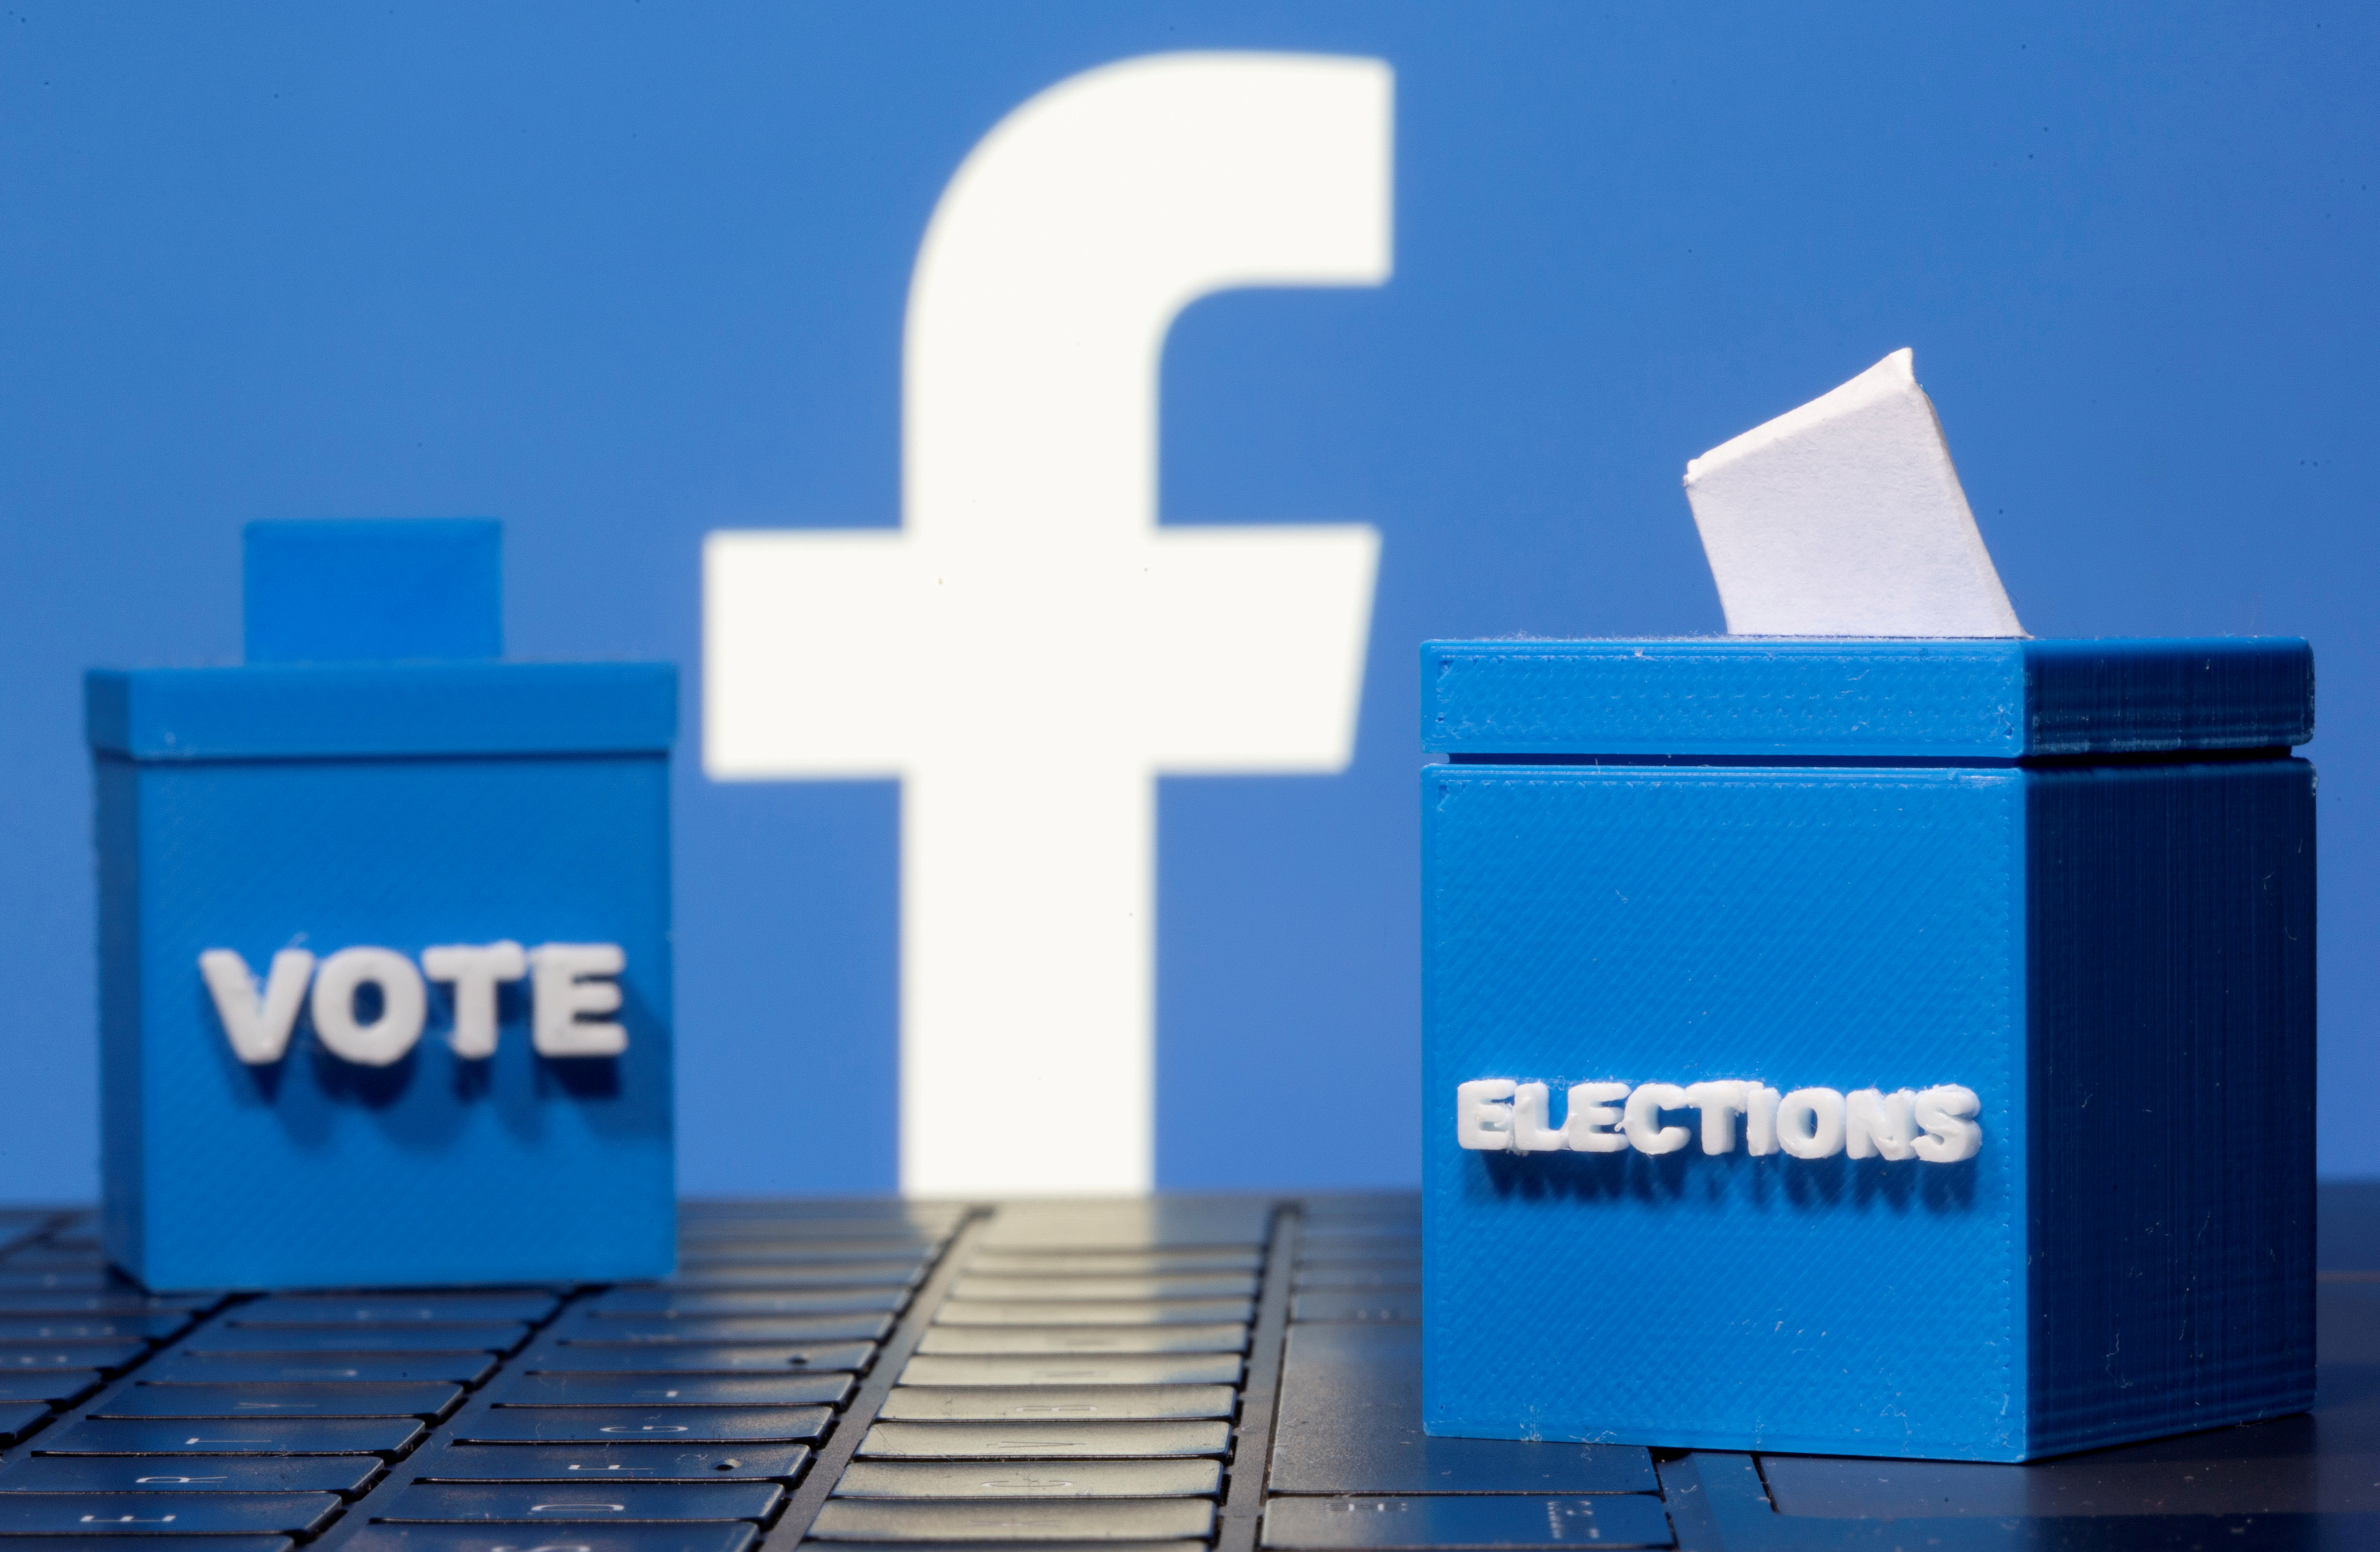 3D-printed ballot boxes are seen in front of a displayed Facebook logo in this illustration taken November 4, 2020. REUTERS/Dado Ruvic/Illustration/File Photo